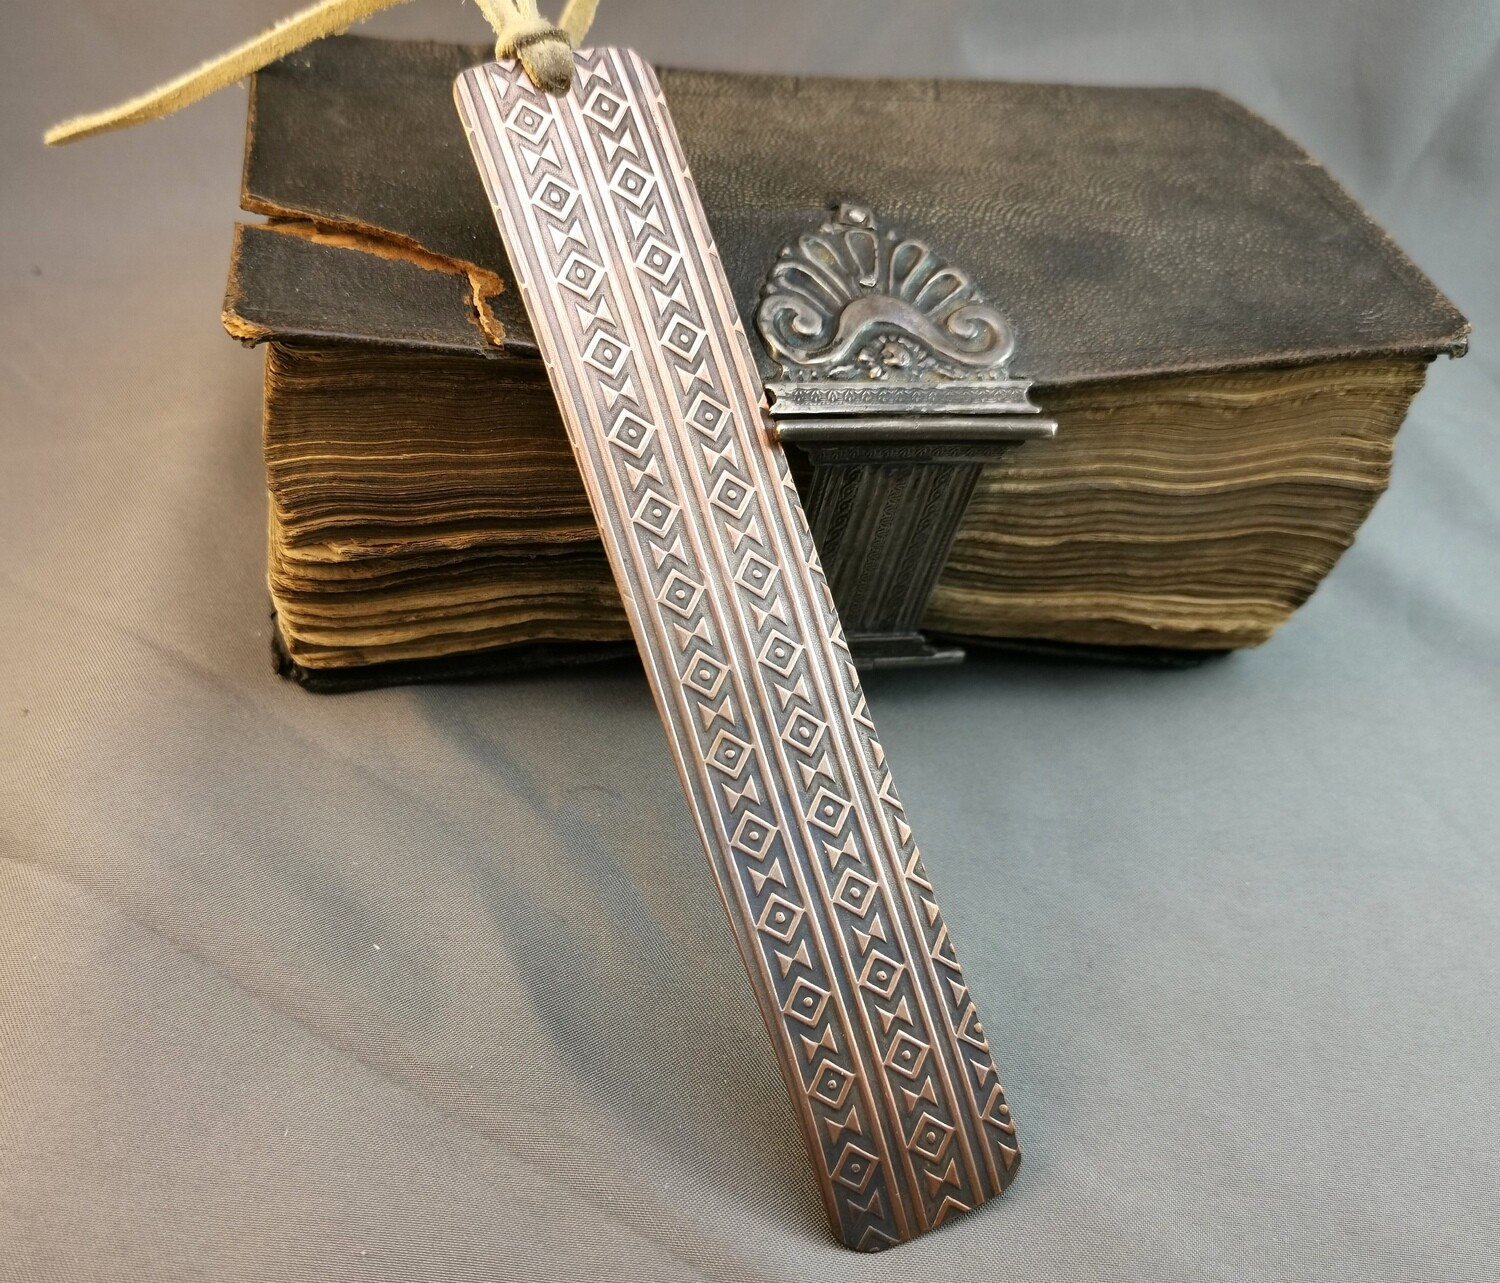 Handmade Patterned Textured Copper Bookmark